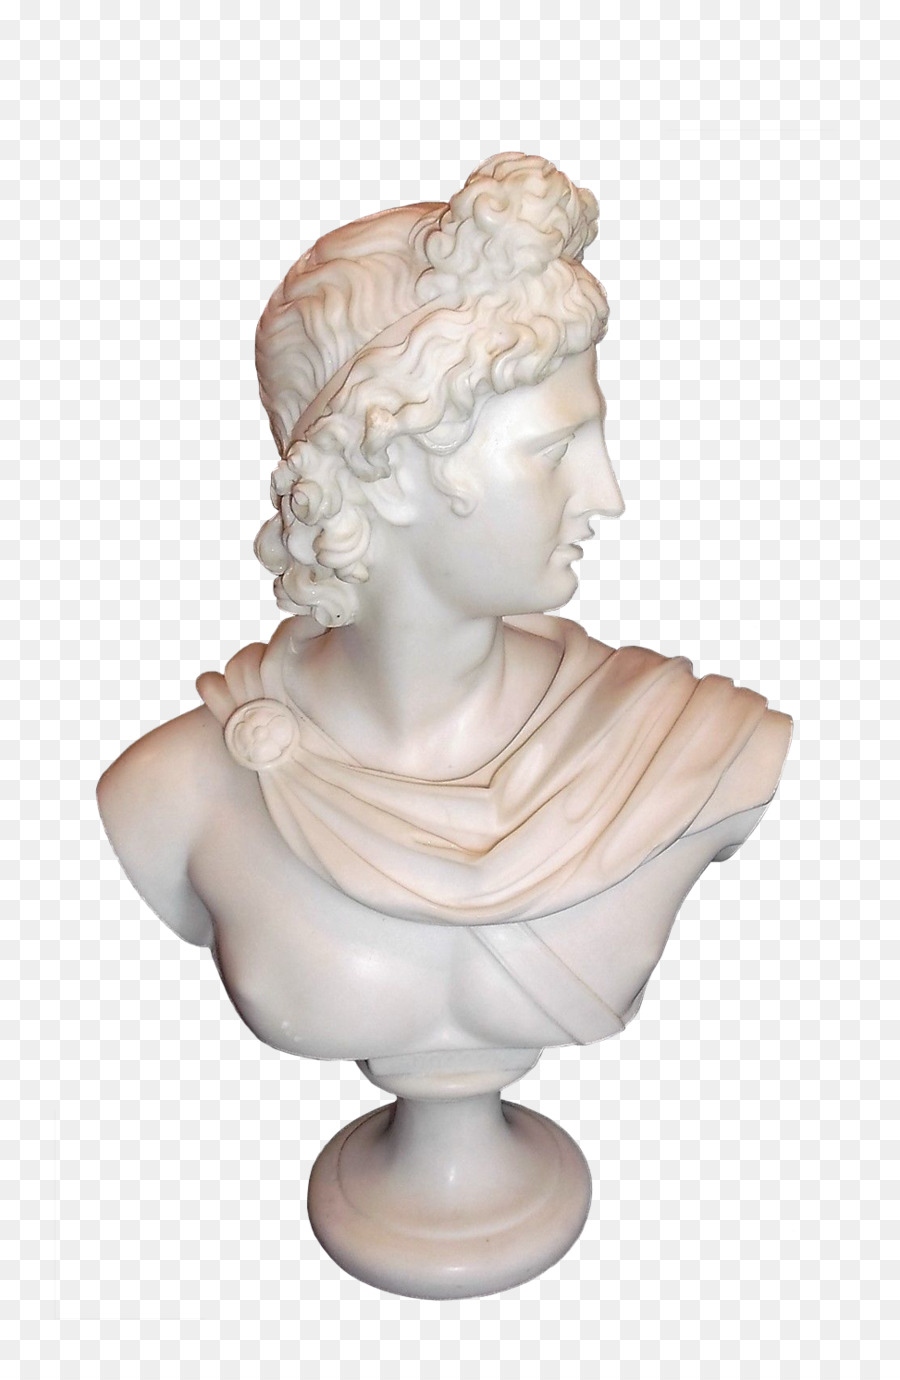 marble bust png clipart Bust Marble sculpture Classical sculpture